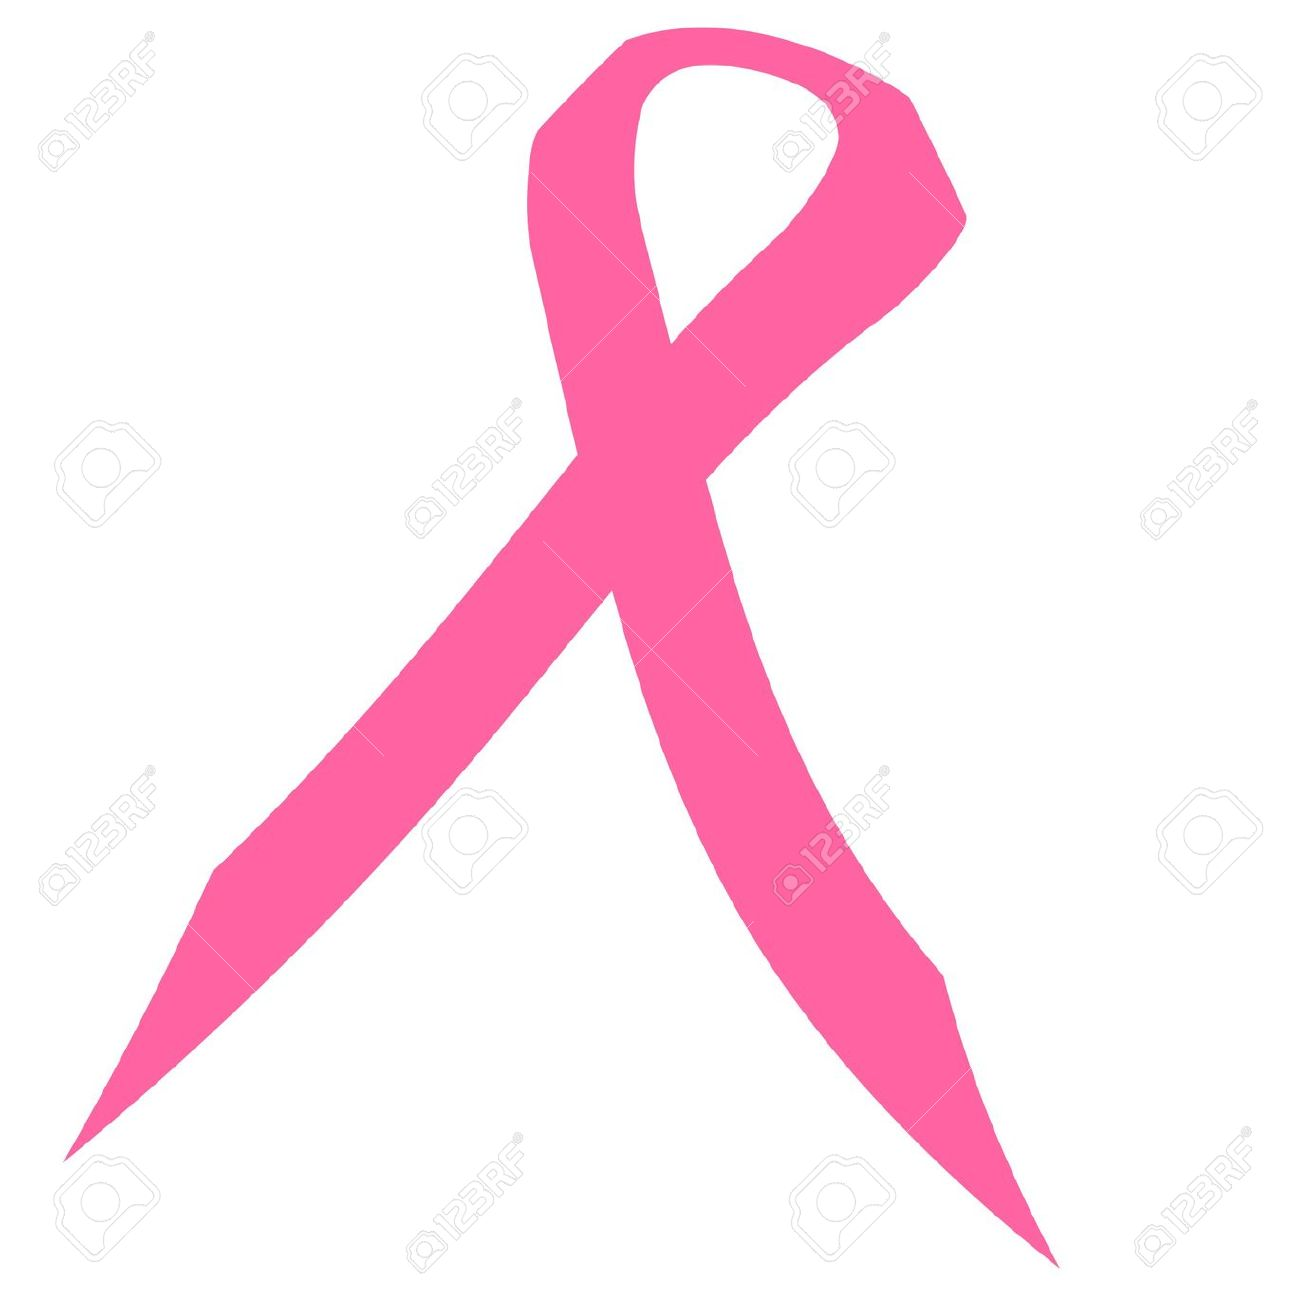 cancer research pink ribbon clipart panda free clipart images rh clipartpanda com free breast cancer pink ribbon border clip art breast cancer pink ribbon clip art free